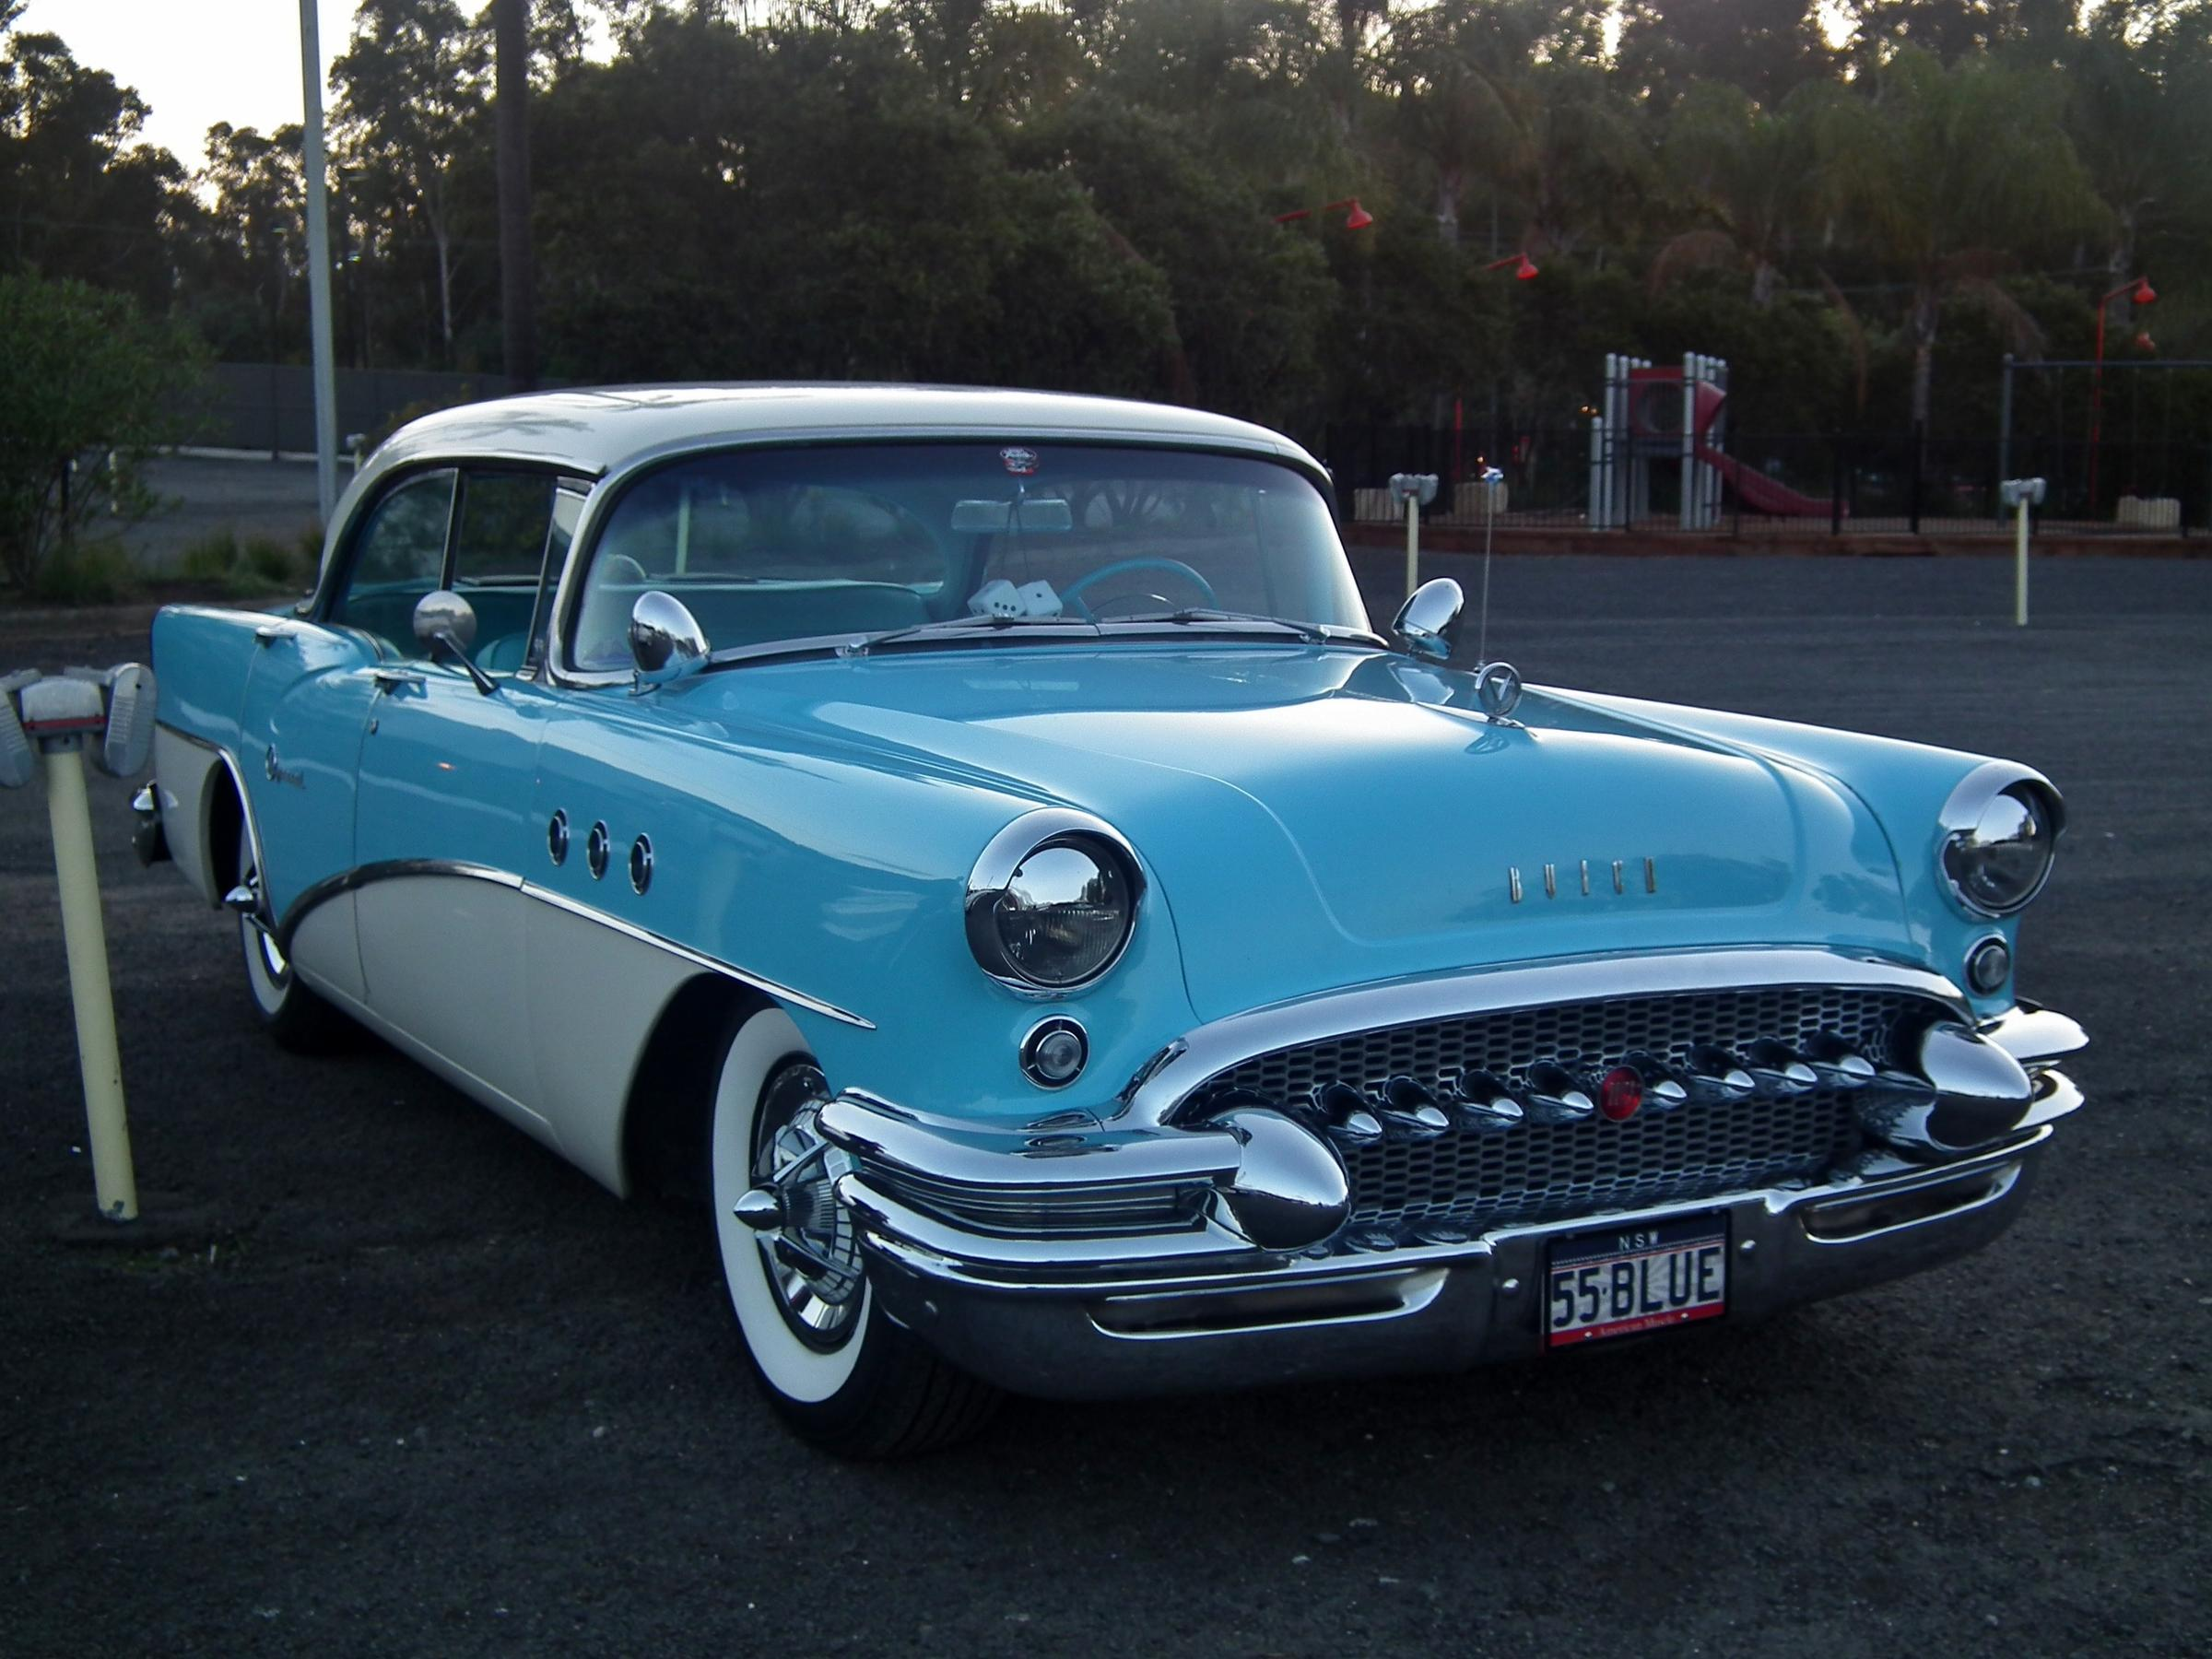 020 Essay Example 1955 Buick Special Hardtop Sedan 15420810537 About Phenomenal Car My Career Choice Your Caring And Sharing Full